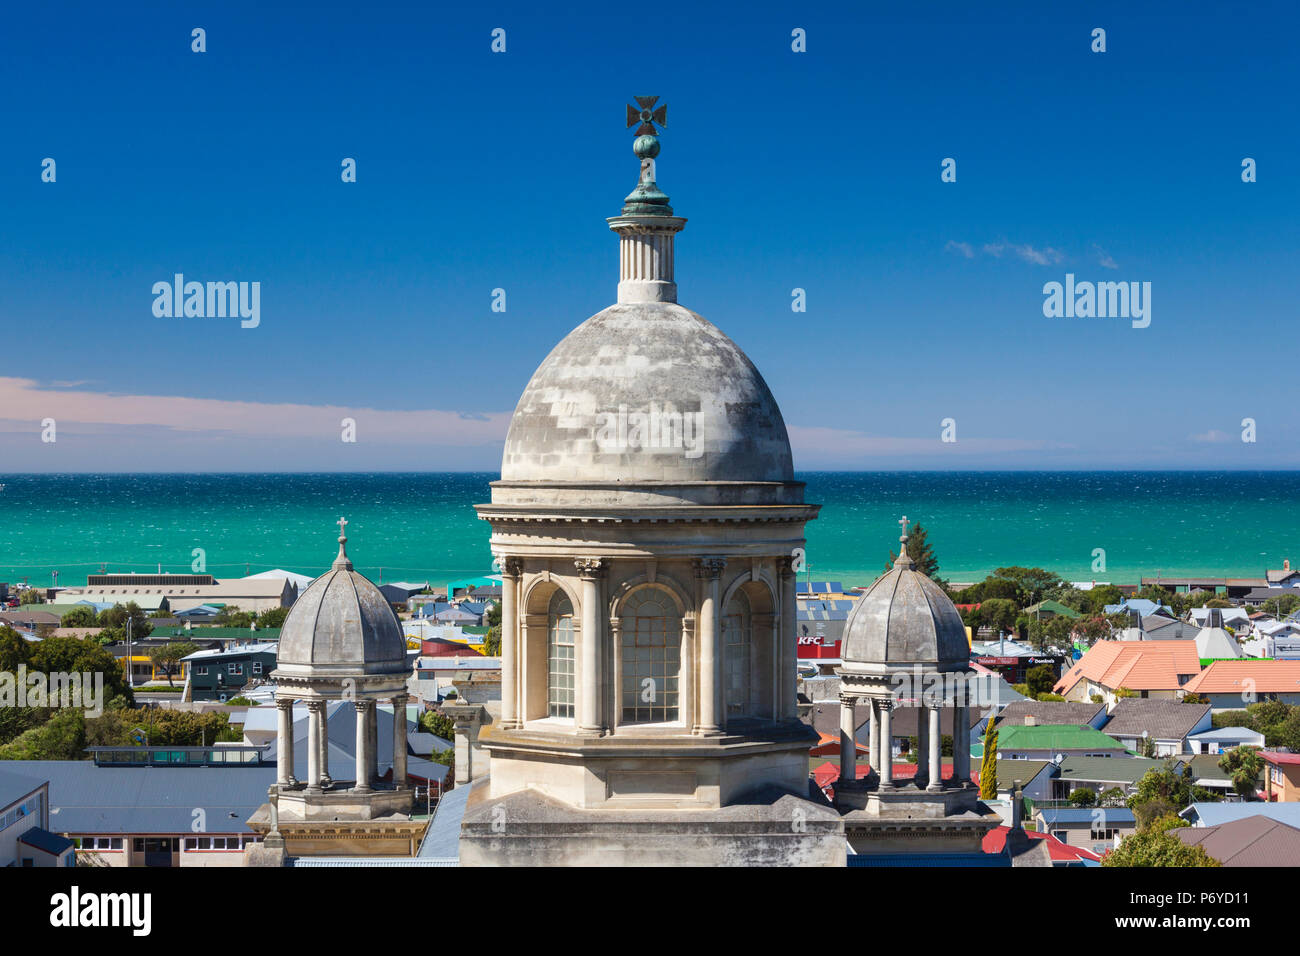 New Zealand, South Island, Otago, Oamaru, elevated view of St. Patrick's Basilica - Stock Image